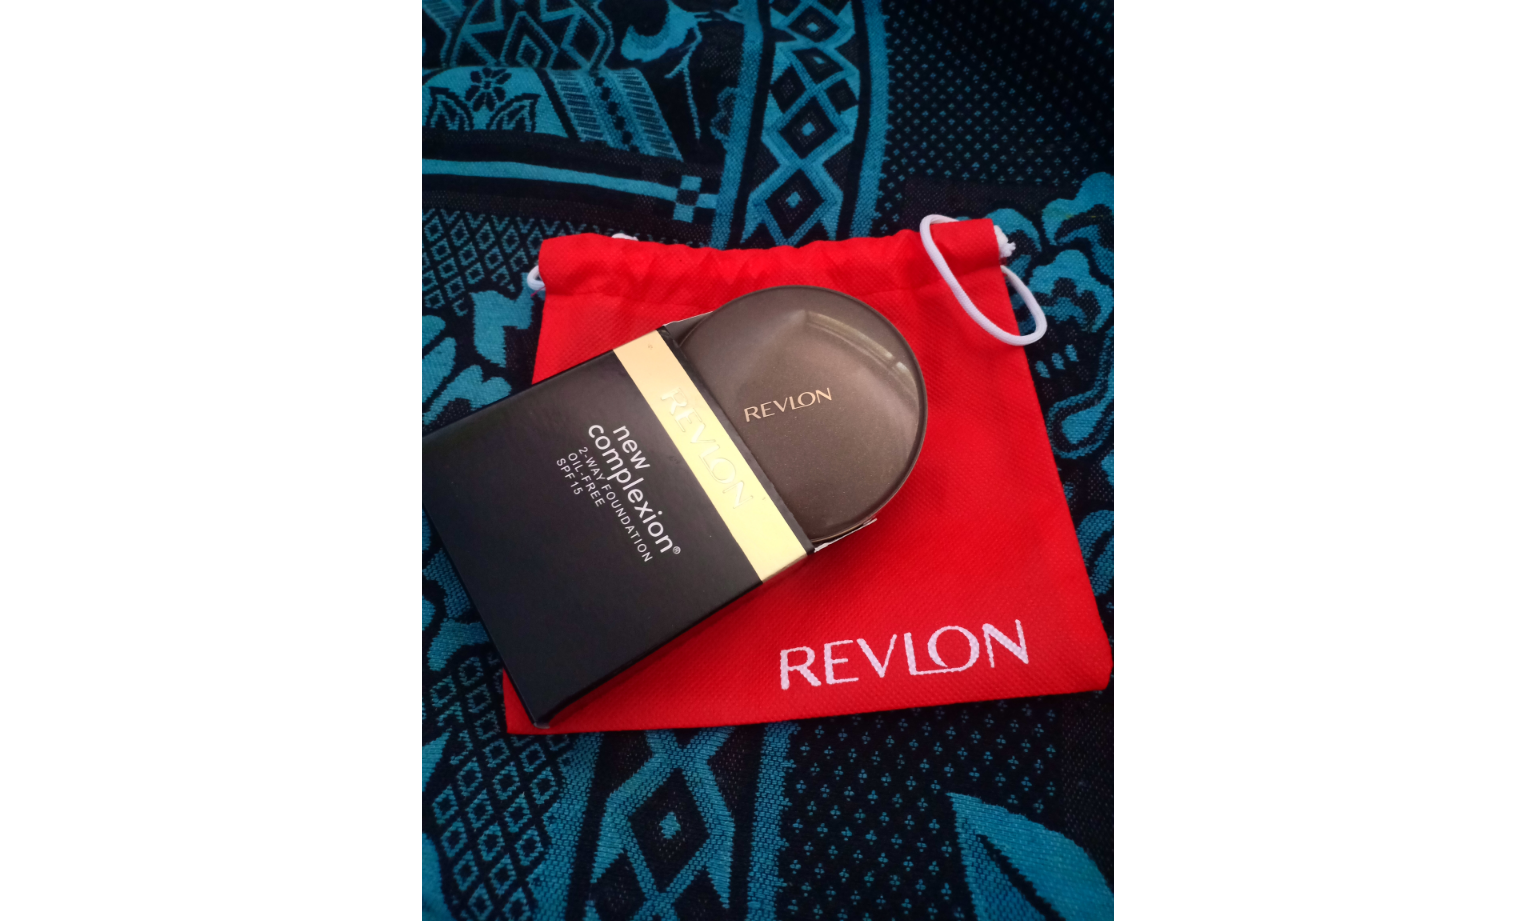 Revlon New Complexion 2 Way Foundation